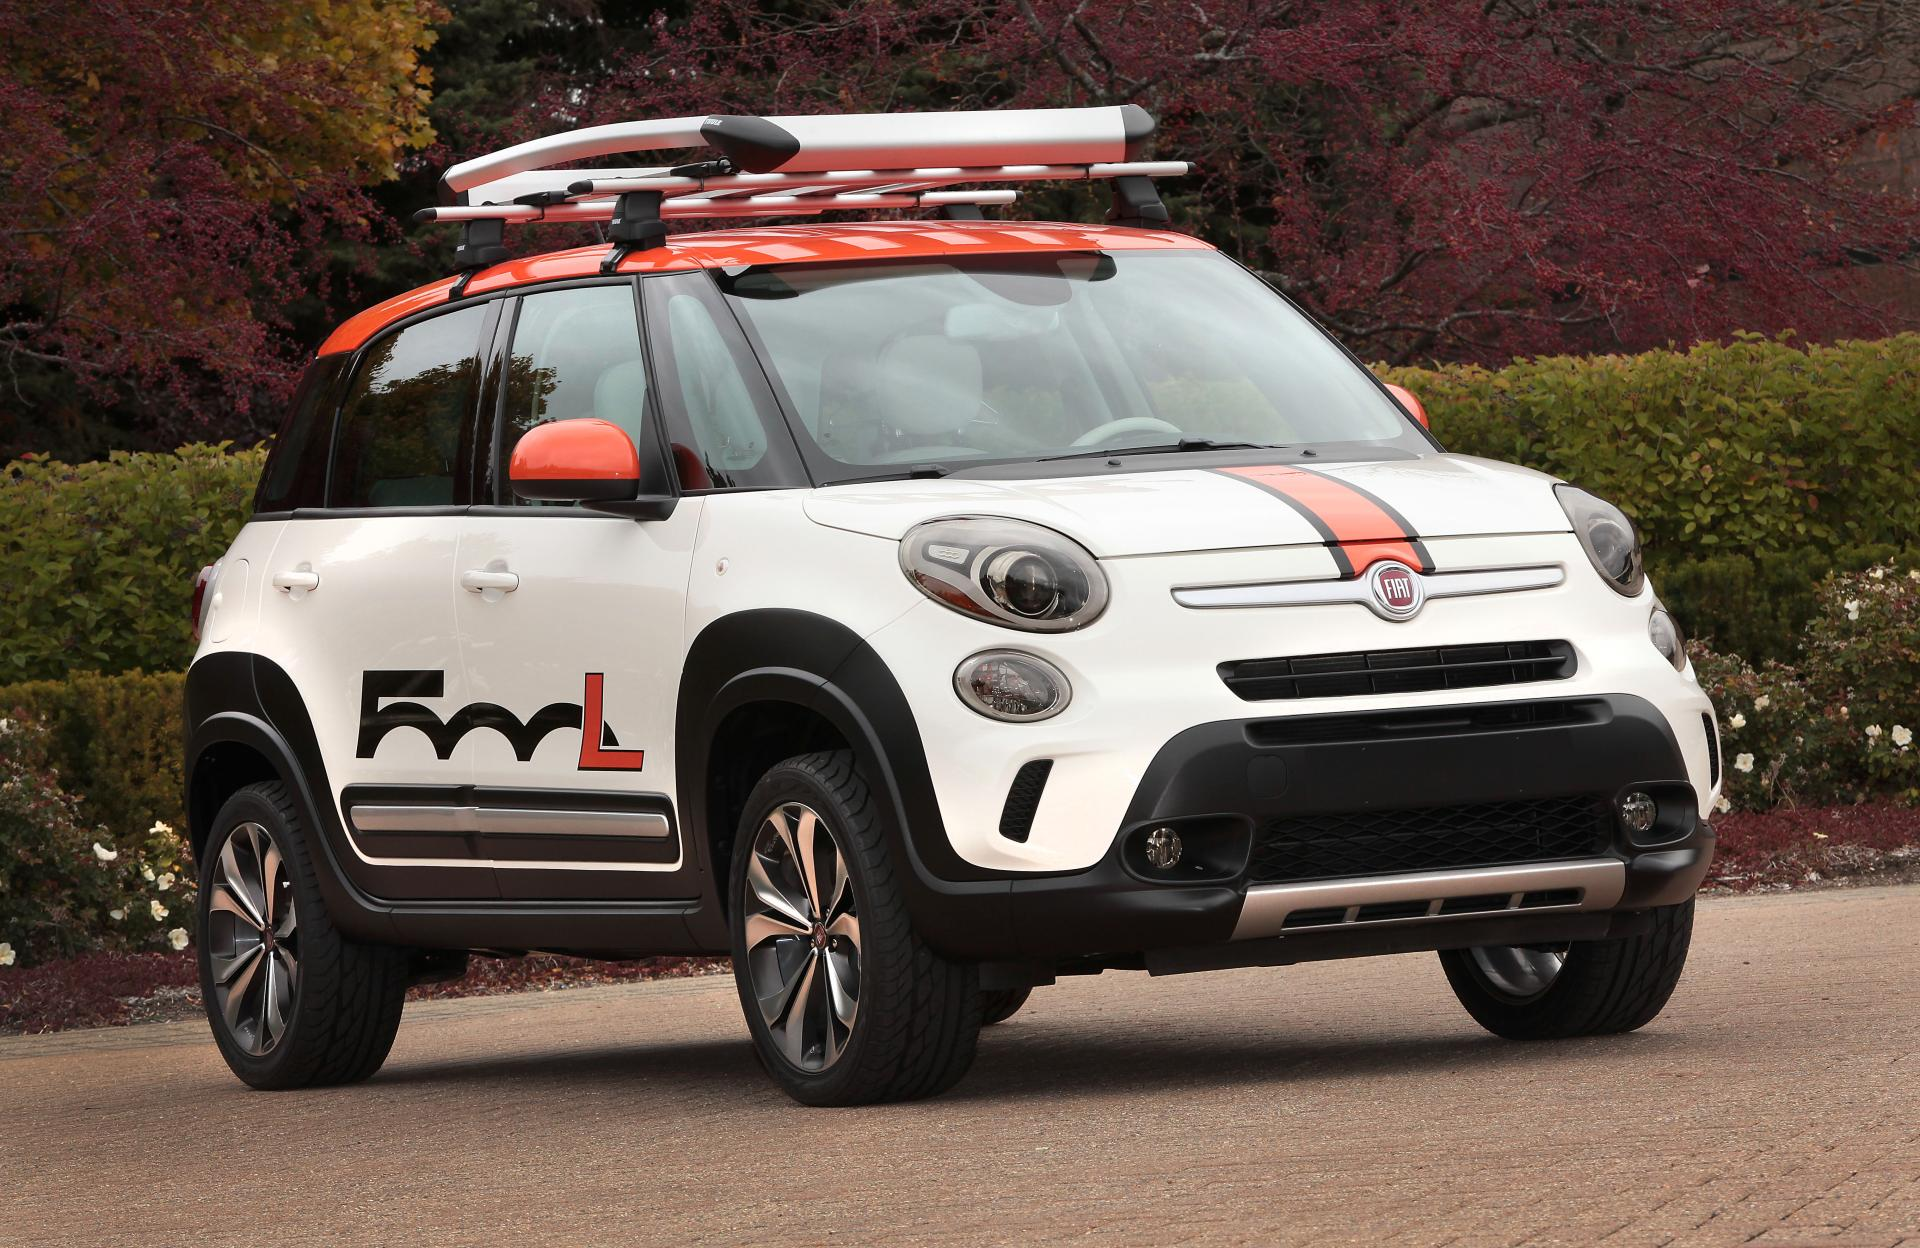 2014 fiat 500l adventurer. Black Bedroom Furniture Sets. Home Design Ideas